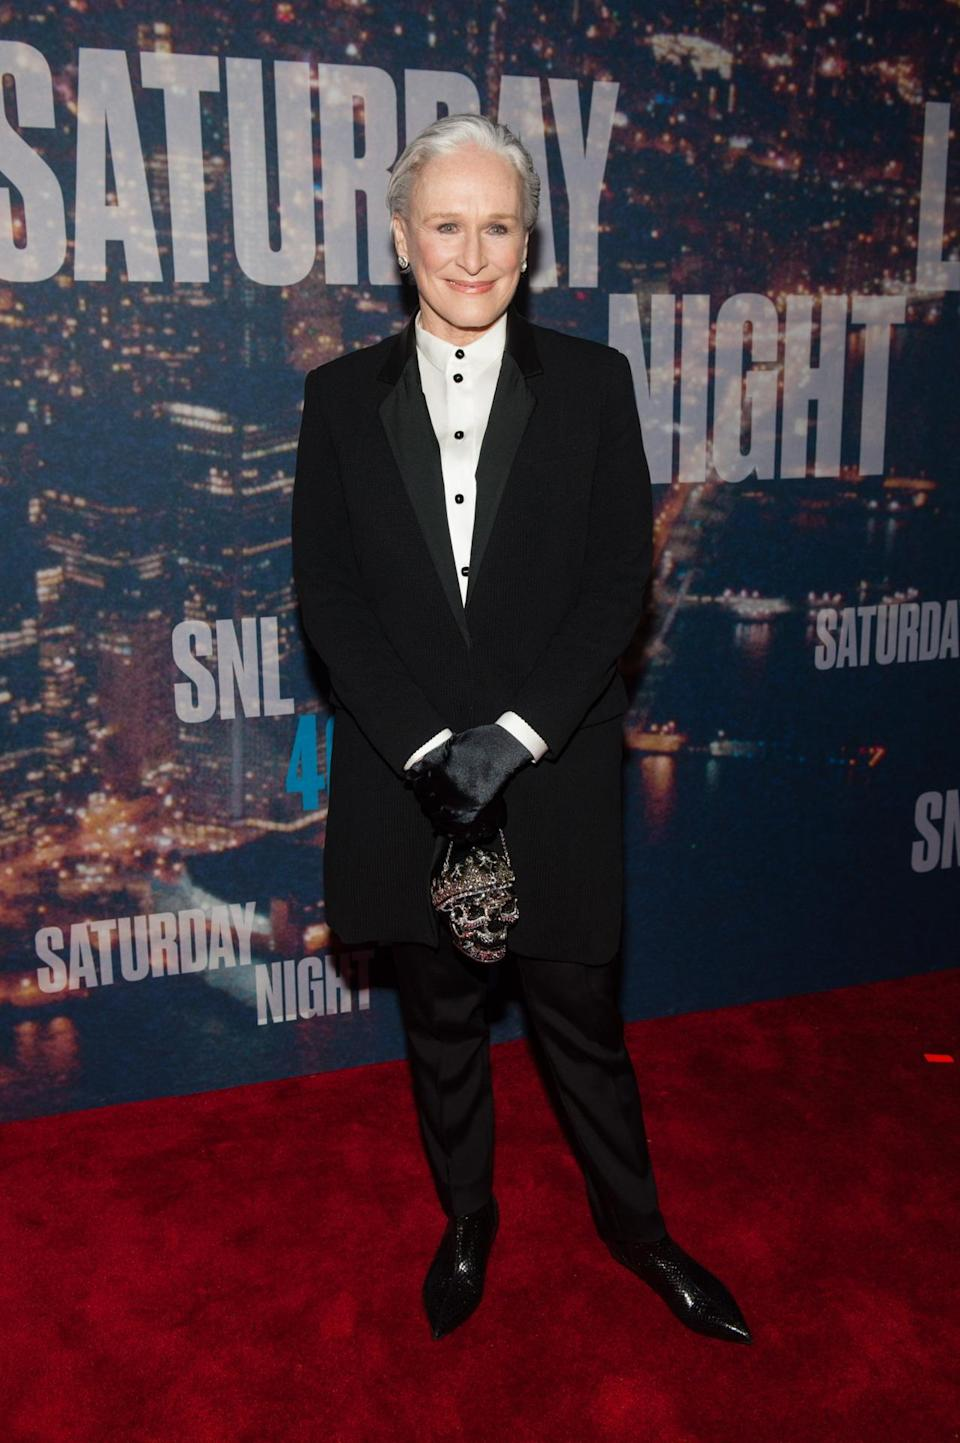 Glenn Close makes a strong case for gender-bending on the red carpet in a tuxedo. The actress added some flair with shiny black gloves, pointed-toe Chelsea boots that Harry Styles probably owns, and an embellished skull purse that most likely makes Sarah Burton mad she didn't think to create it first.